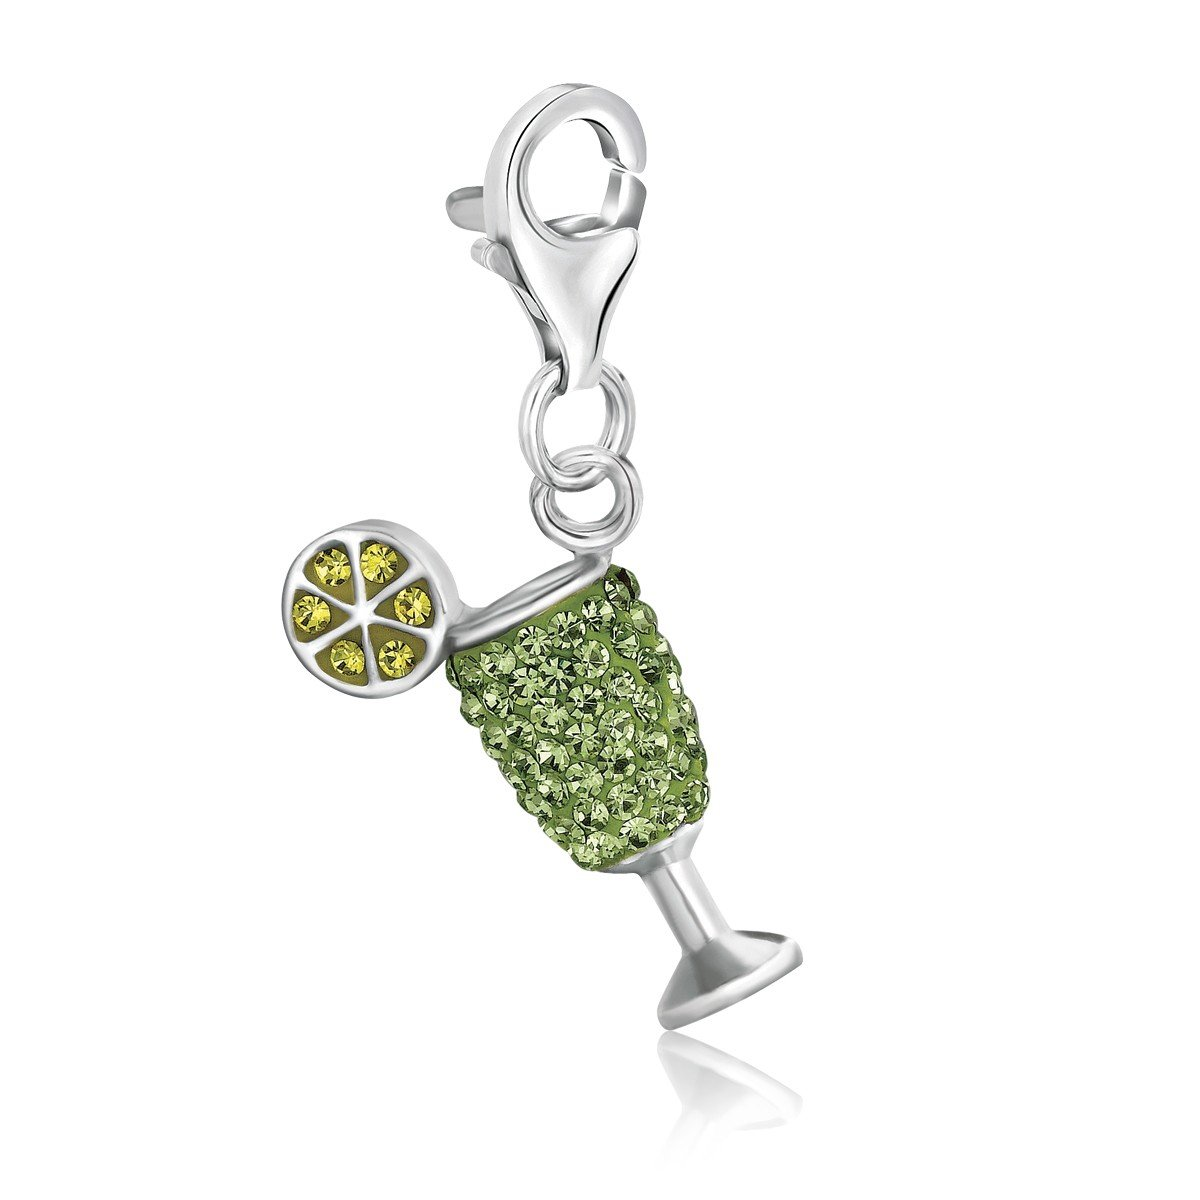 918e67852 Sterling Silver Cocktail Glass Green Tone Crystal Encrusted Charm ...